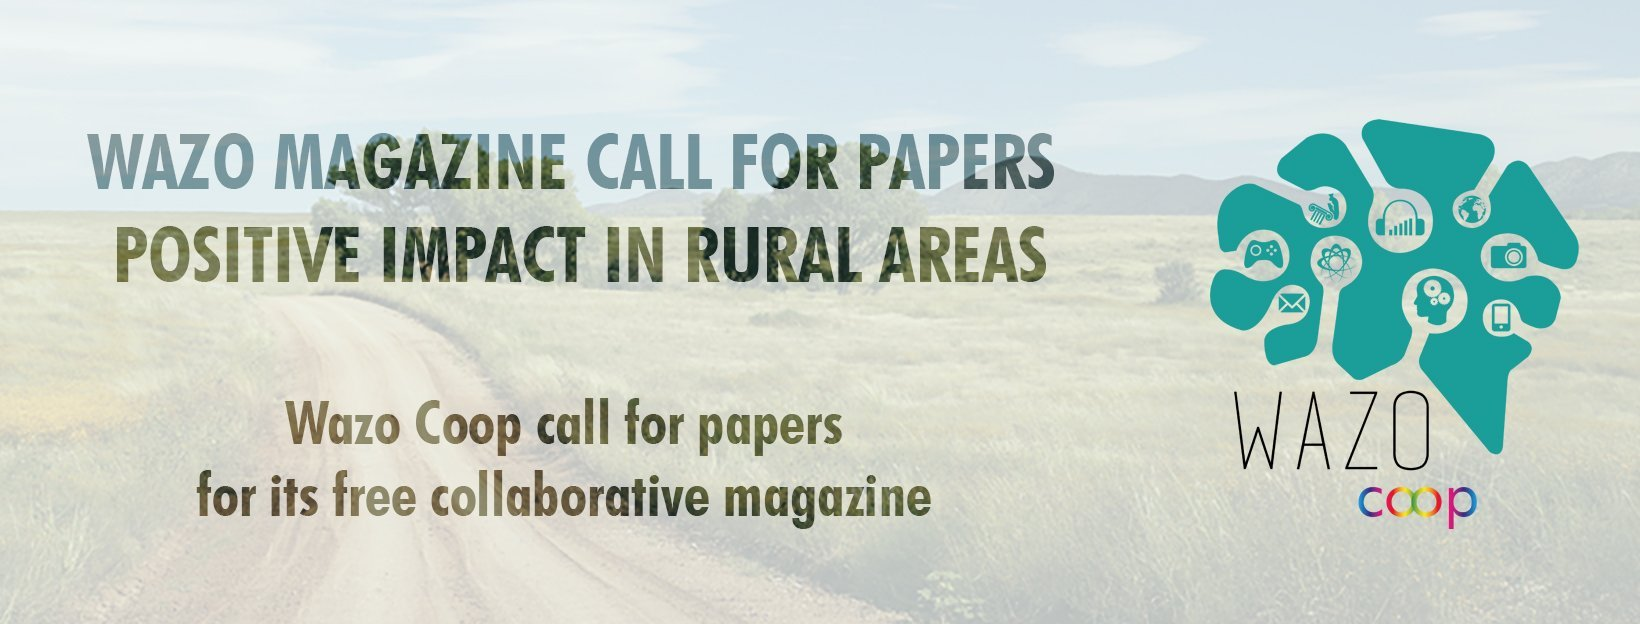 Call for papers. The positive impact in rural areas